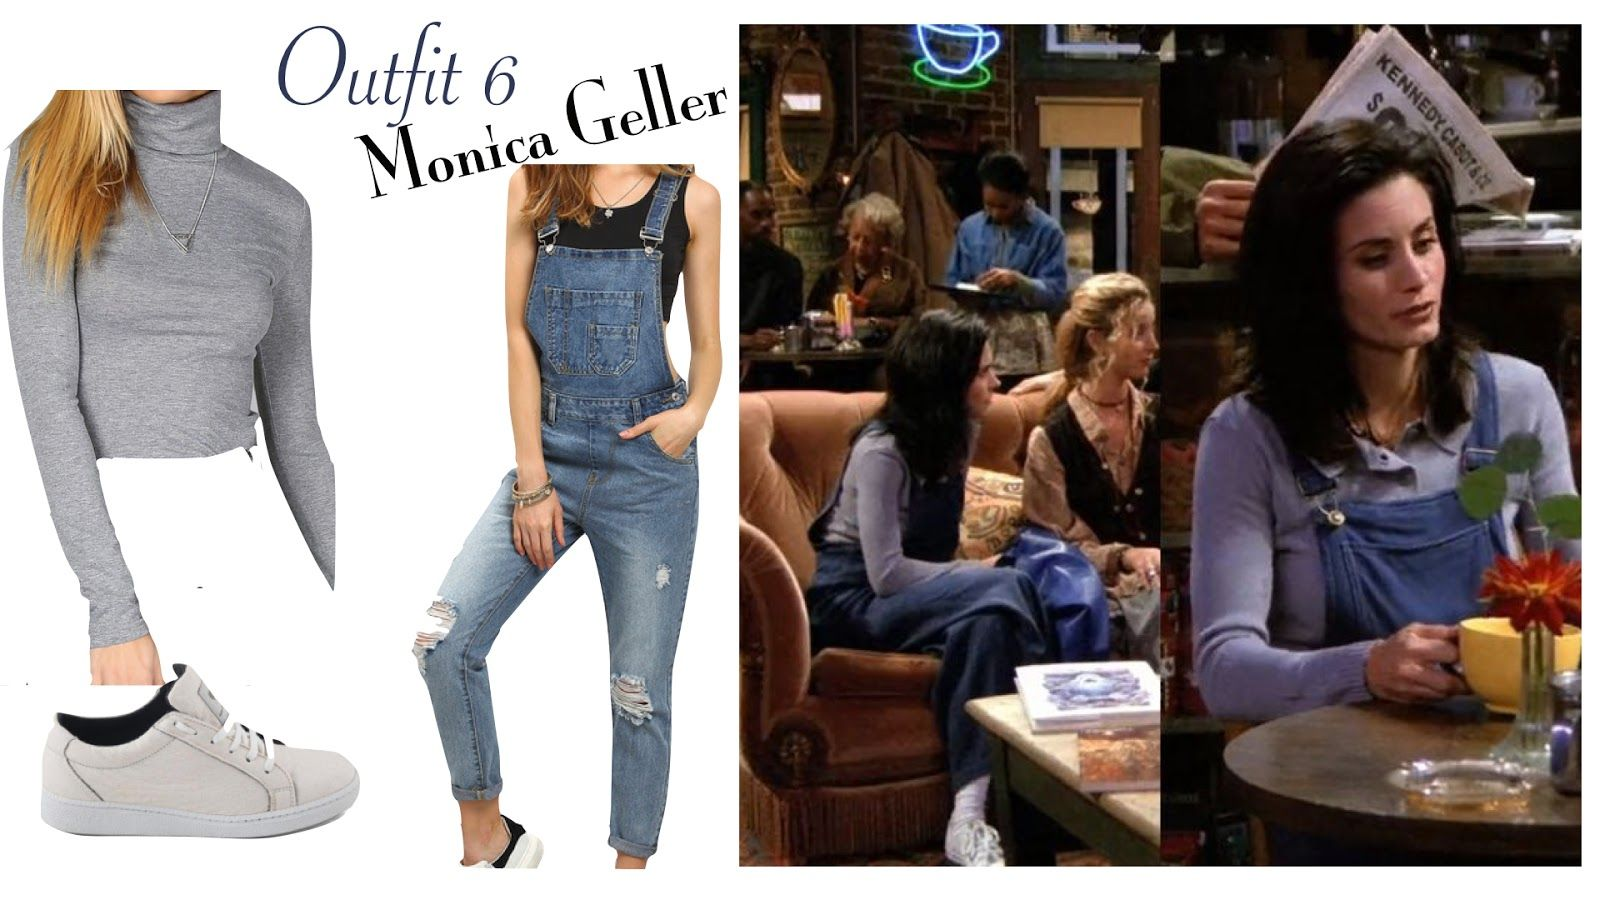 Friends Tv Show Halloween Costumes Ideas.F R I E N D S Inspired Fashion Monica Geller